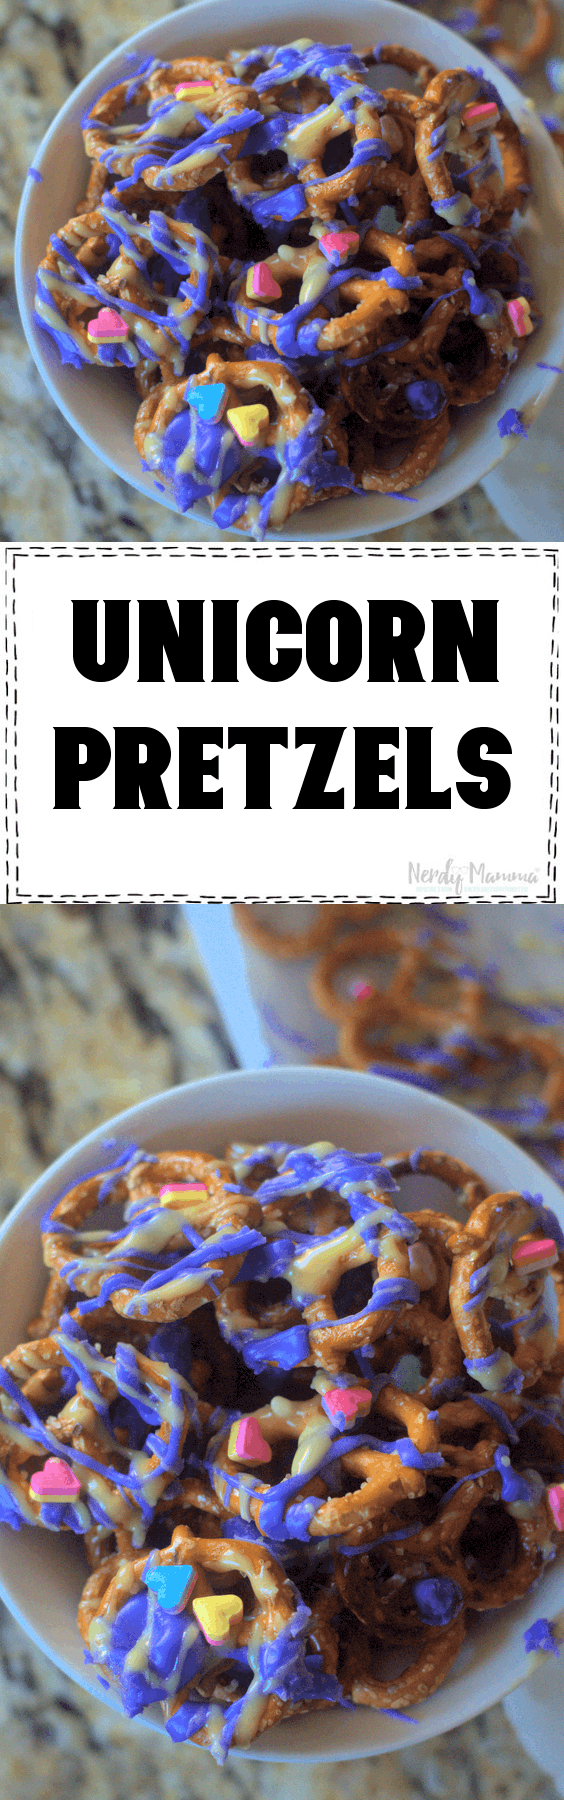 Nocking another simple party food out for a unicorn party...the ultimate in easy: Stupid Simple Unicorn Pretzels. You can't go wrong with pretzels, but if you're throwing down the ultimate unicorn party, this is the perfect snack to go along with all the sweets. And so simple you can make it anytime just for a smile. #nerdymammablog #unicorn #unicornsnack #unicornsnacks #unicornfood #unicornparty #party #partyfood #unicornpartyfood #funfood #sillyfood #funsnacksforkids #easypartyfood